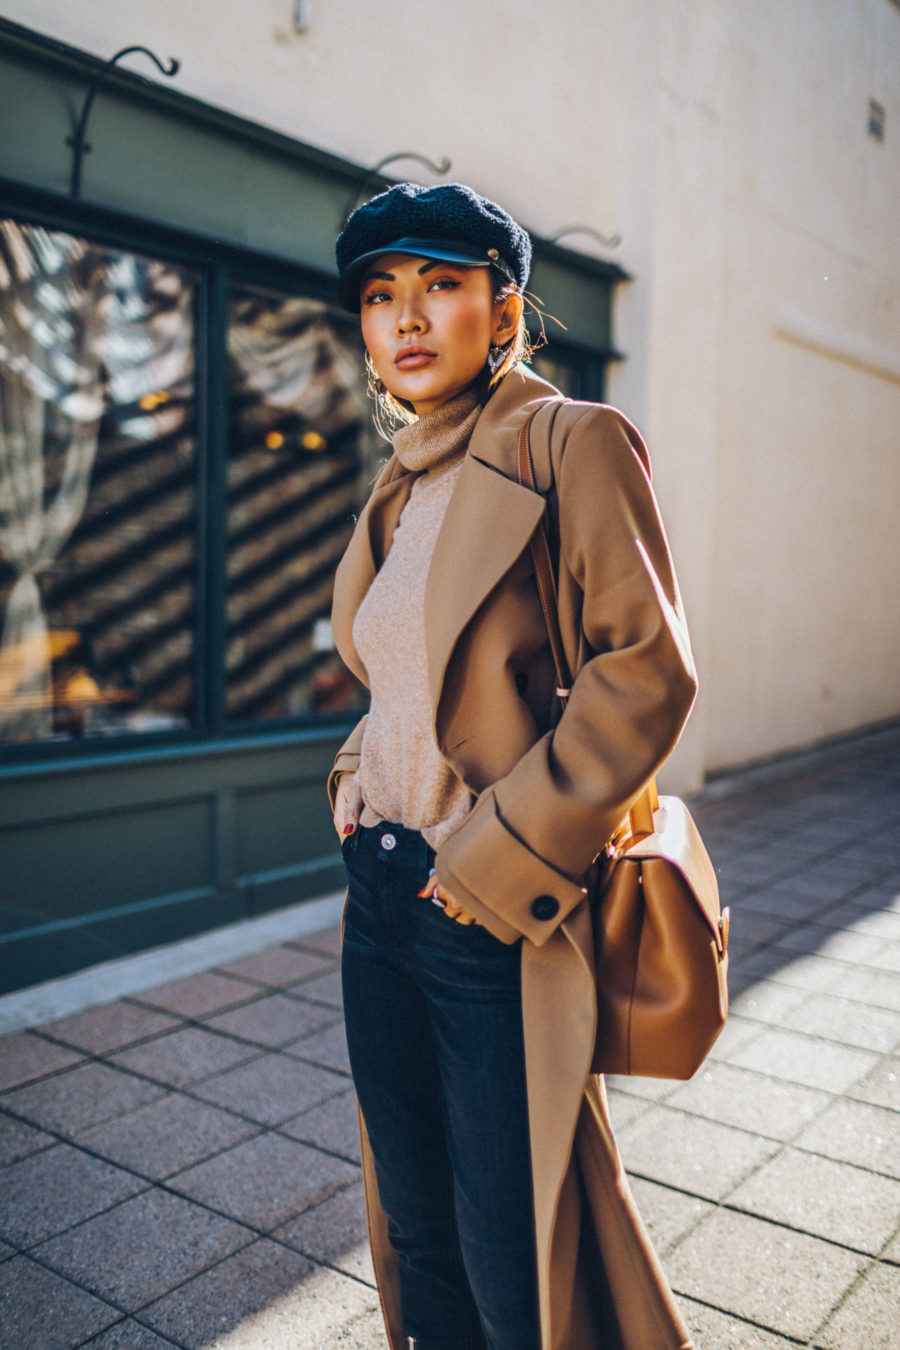 jeans and blazer outfit, baker boy hat, hats for fall, Belted Camel Coat with Dark Denim Baker Boy Cap and Satchel // Notjessfashion.com